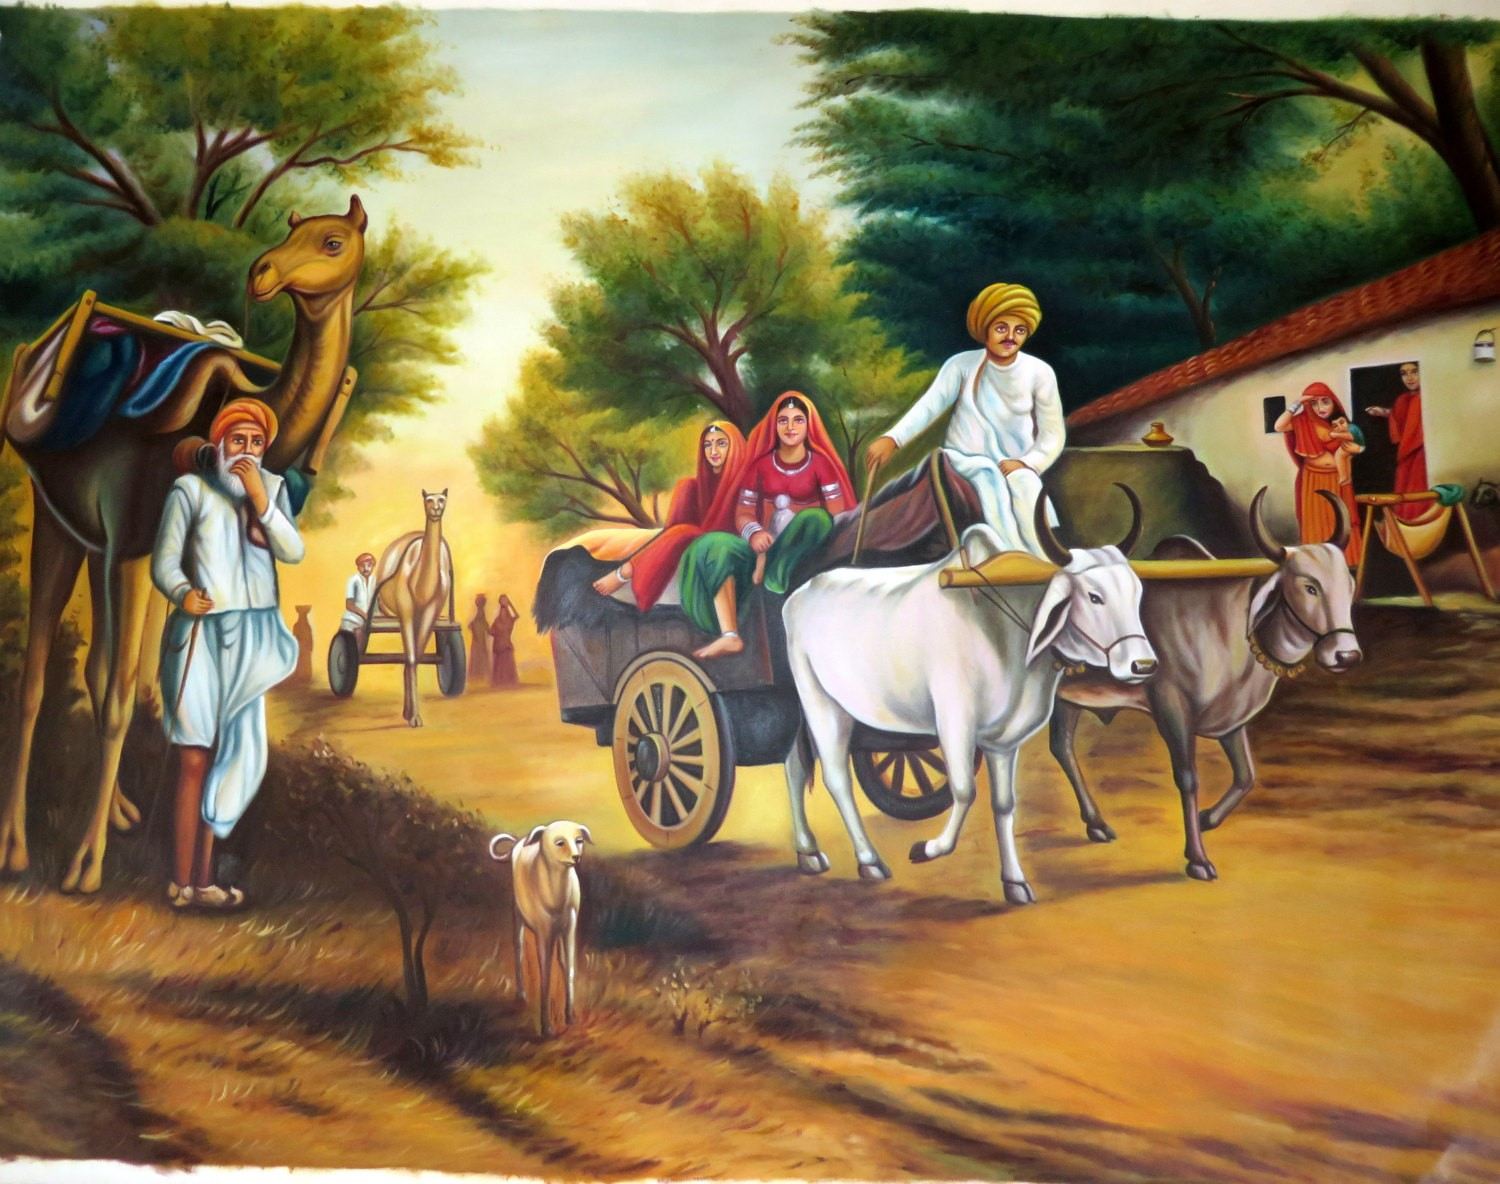 Folks on Bullock cart and Camel